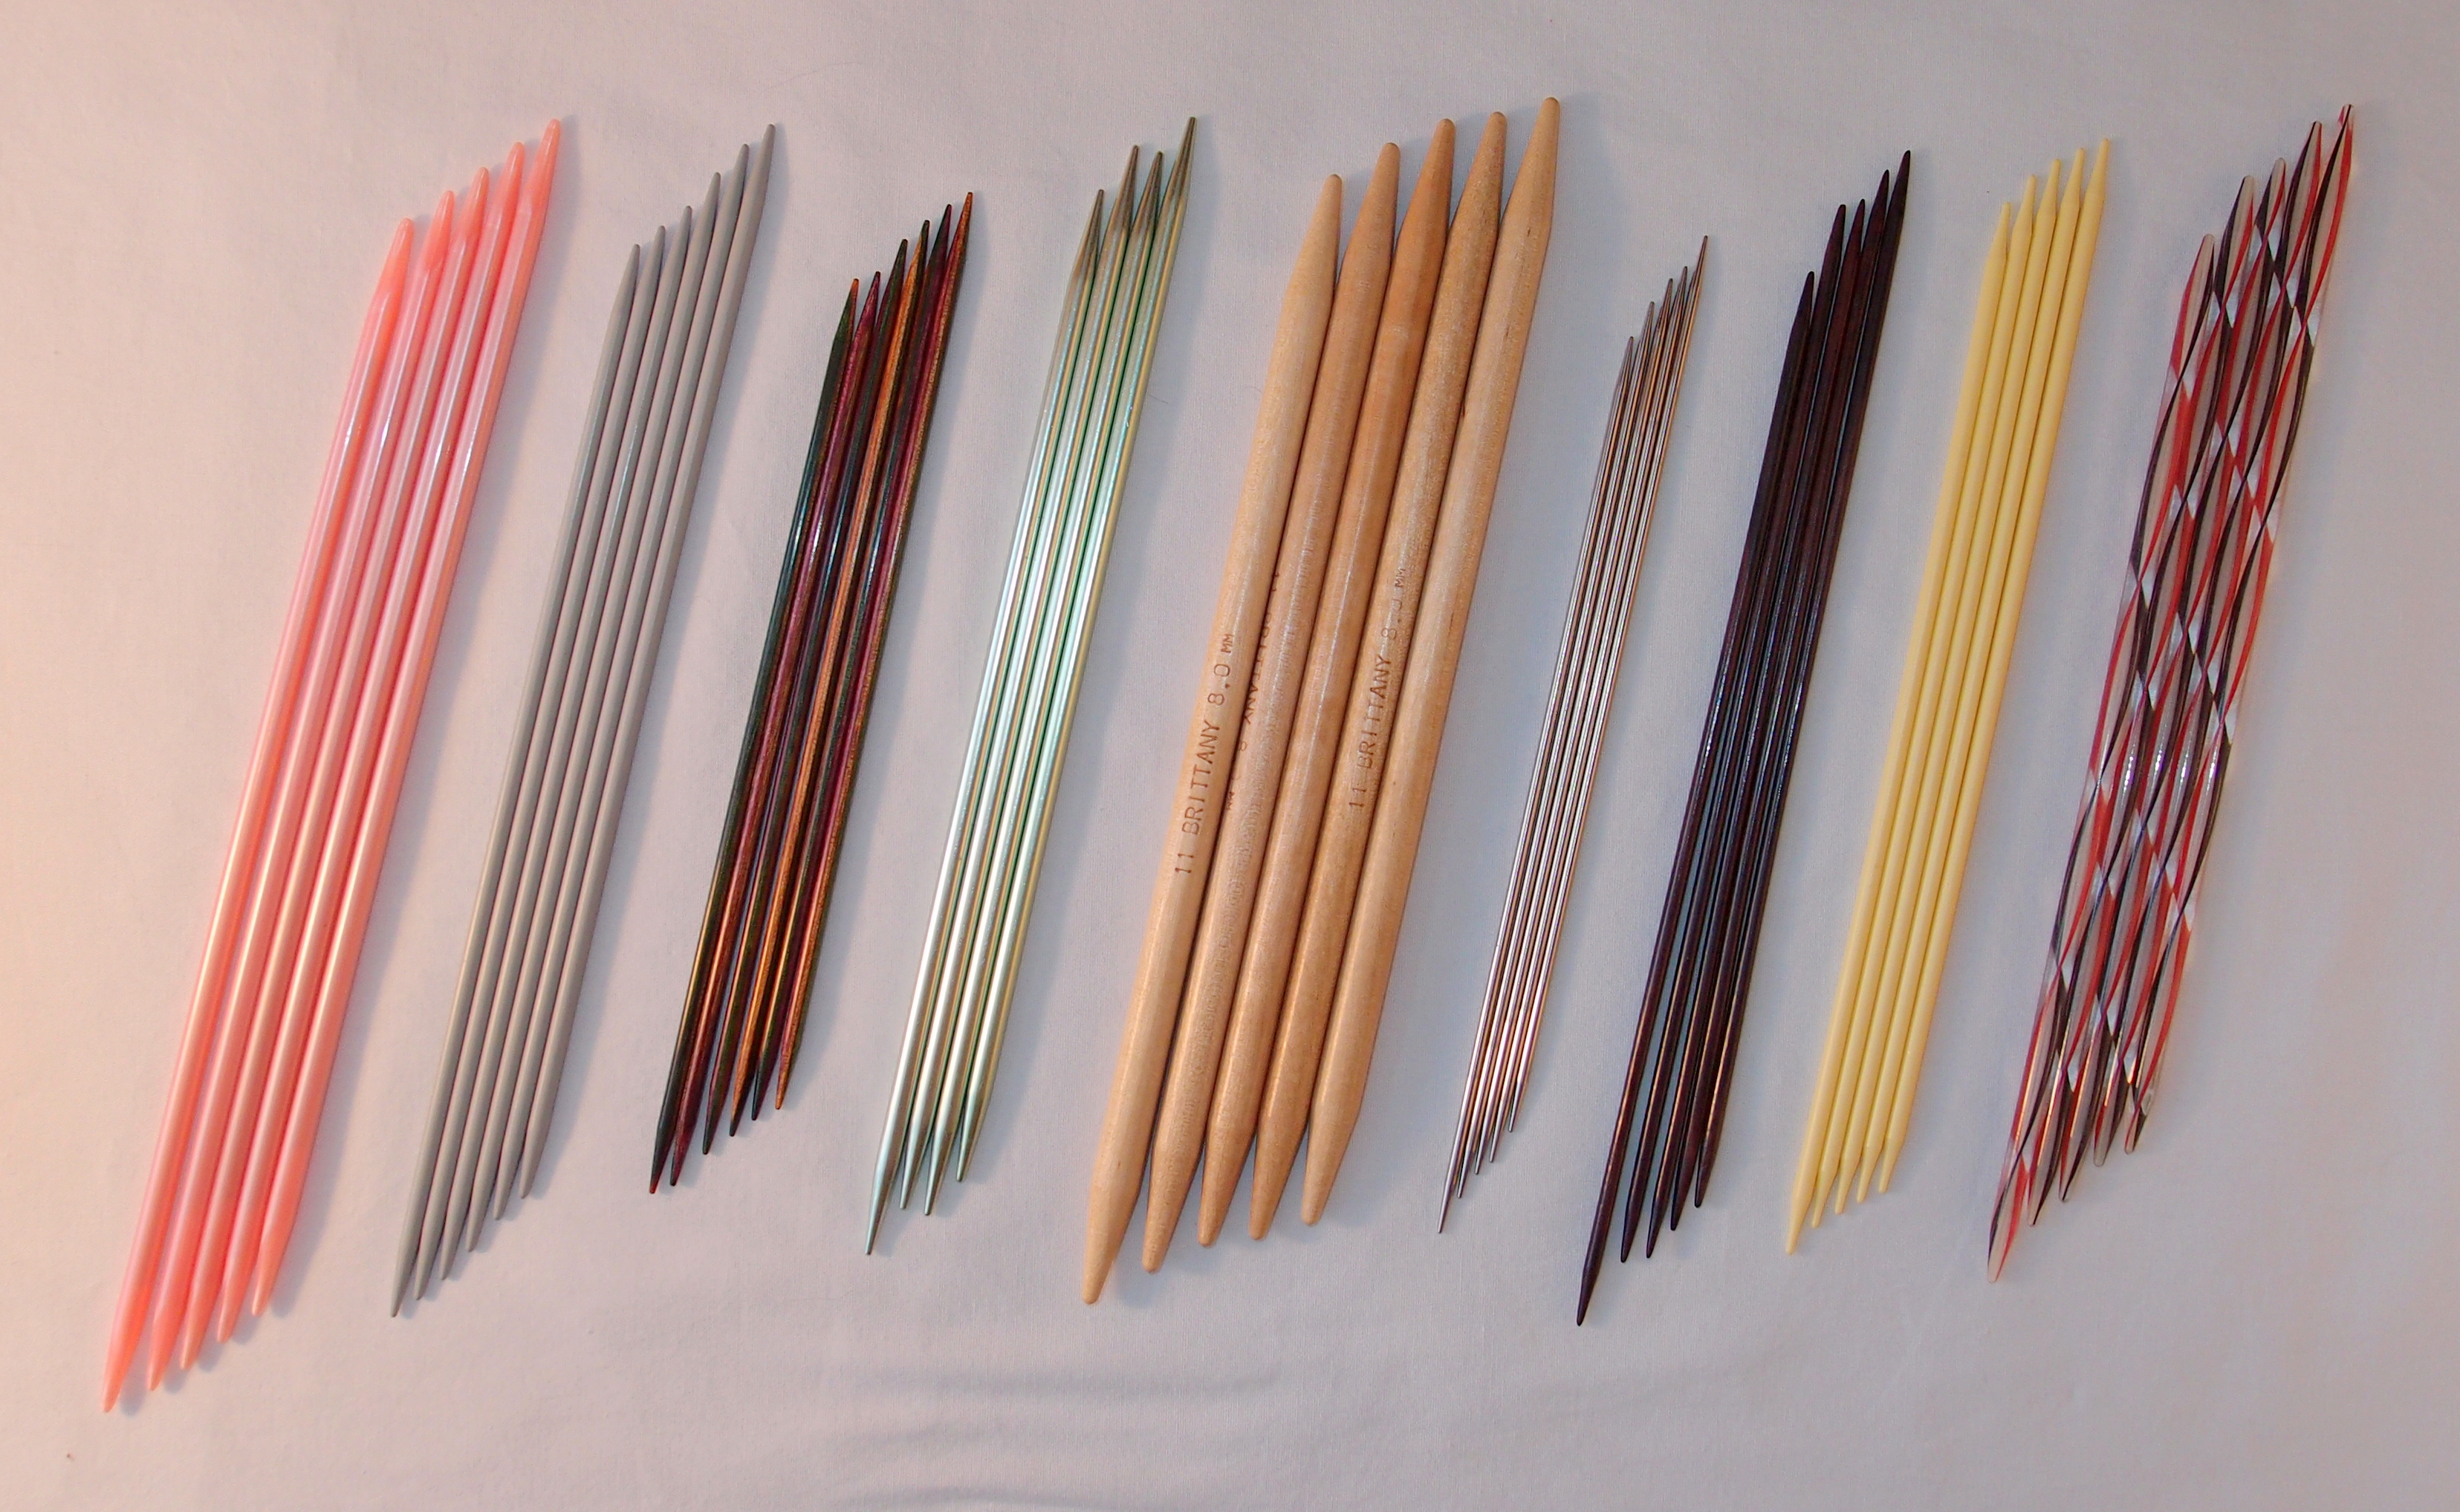 File:Double pointed knitting needles.JPG - Wikimedia Commons